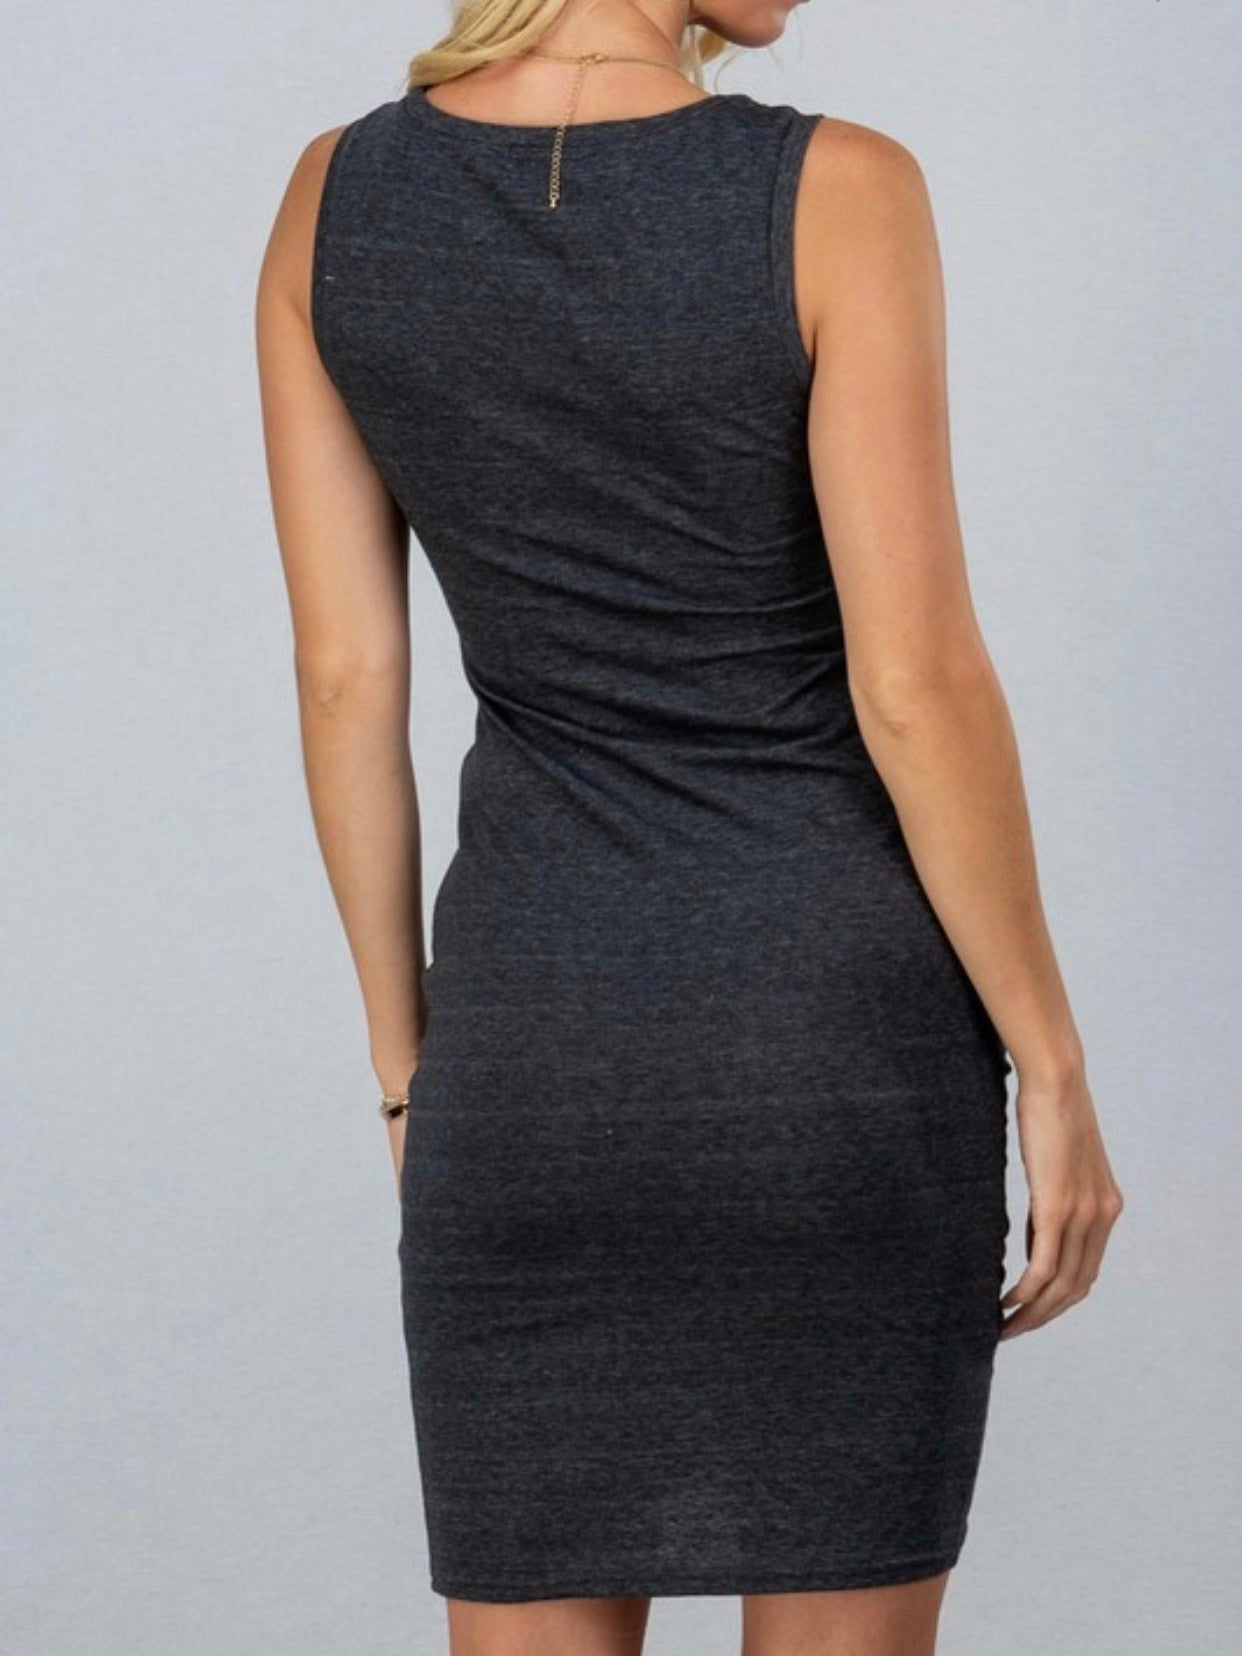 Slate Grey Sleveless Dress